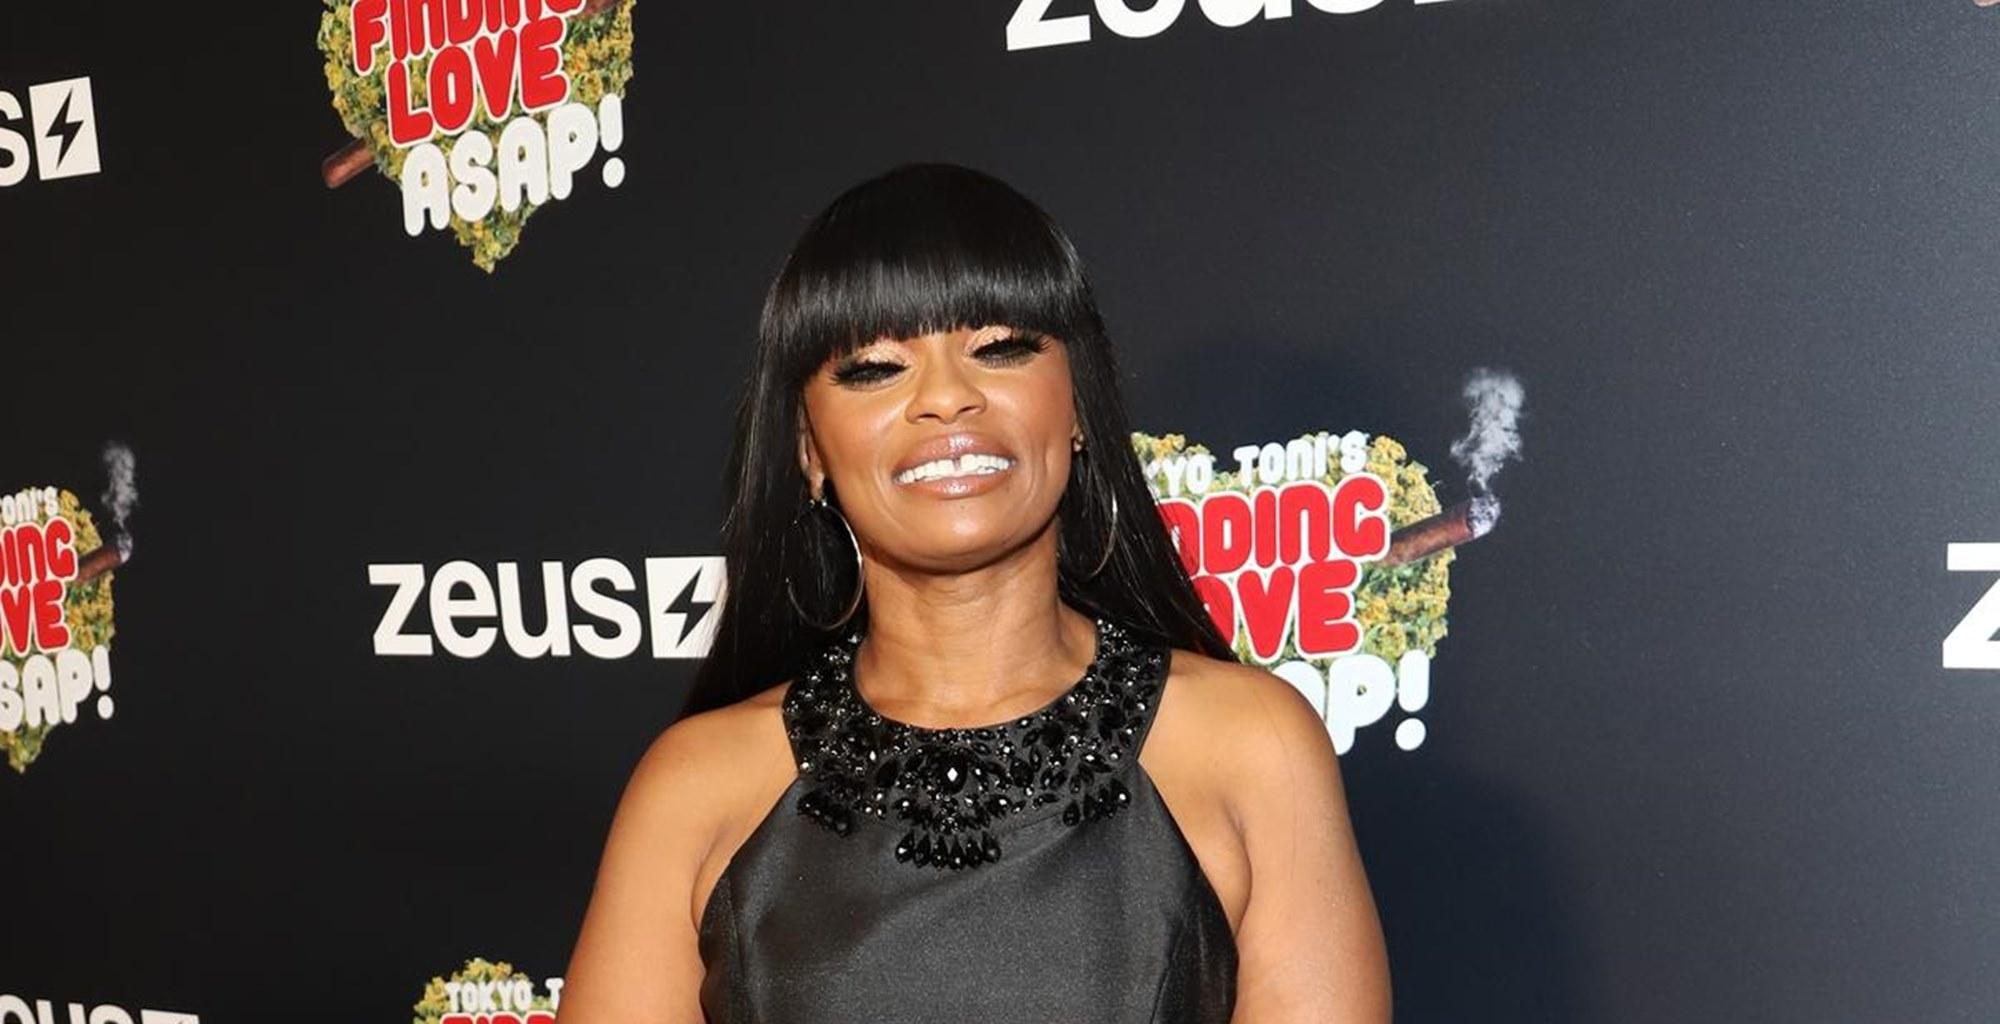 Blac Chyna's Mother, Tokyo Toni, Goes On Destructive Rants About Her Children, Black Women, And Black Lives Matter In Viral Video